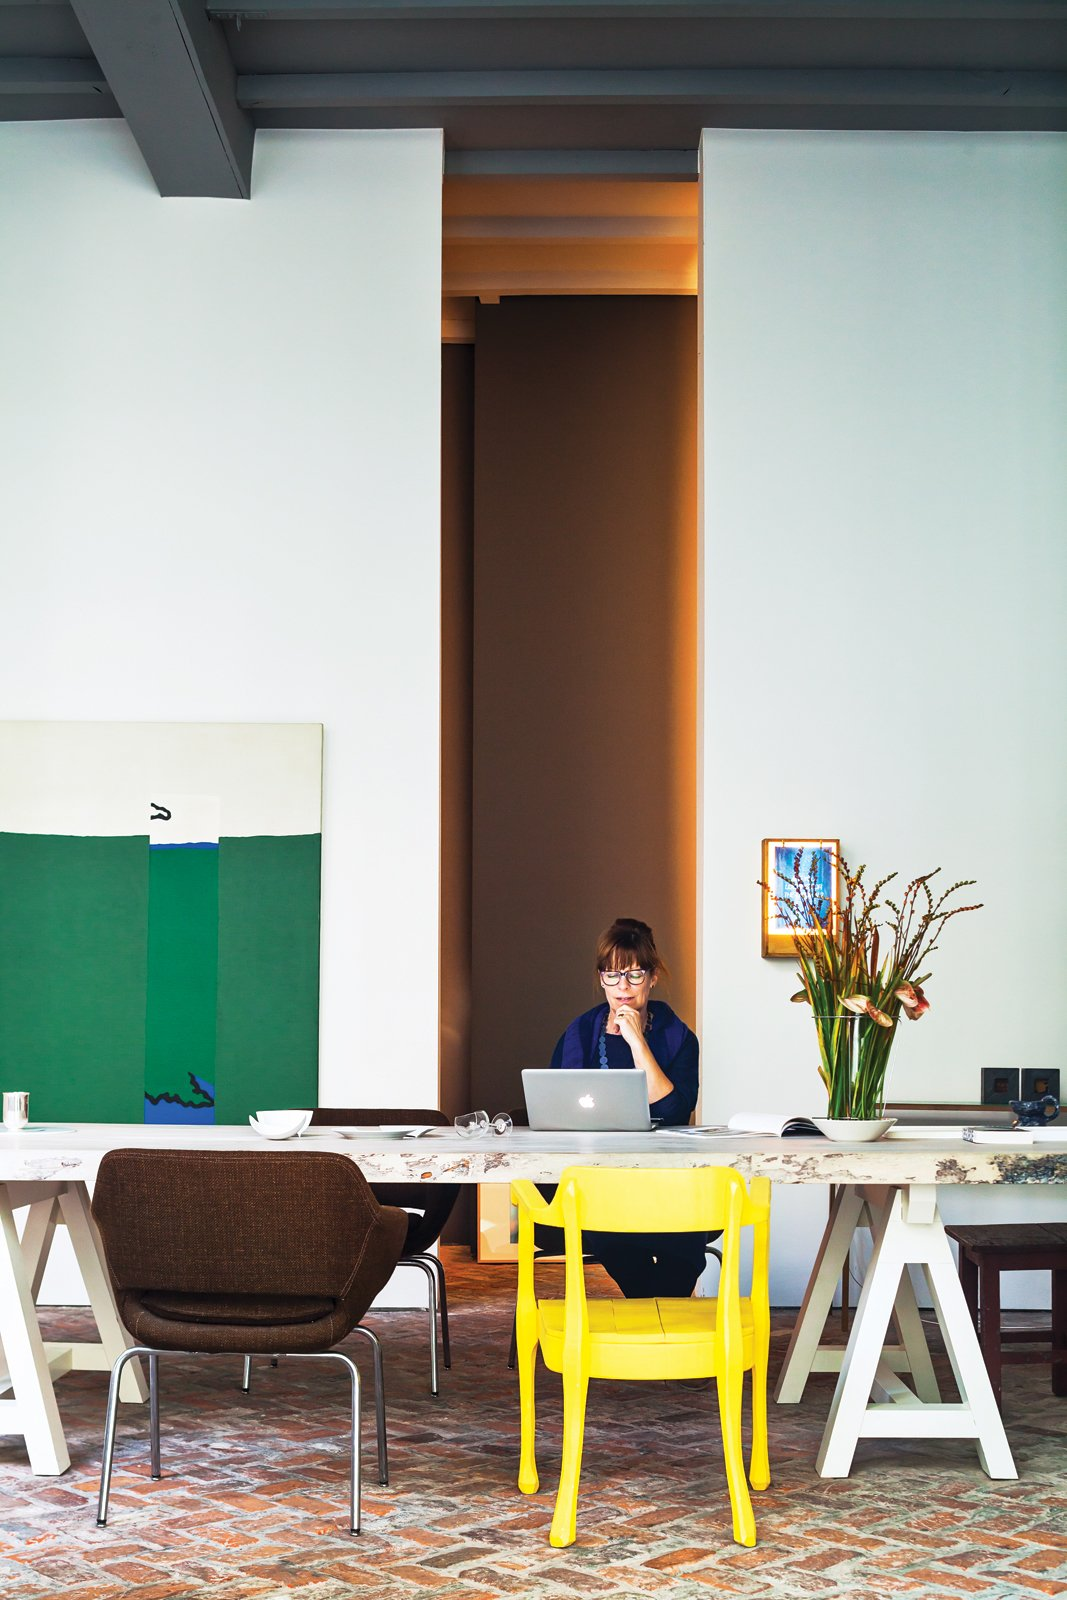 Office, Desk, and Chair With the help of architect Bart Lens, Veerle Wenes and Bob Christiaens merged a 19th-century building with a 1970s one to create a combined home and art gallery in Antwerp. In the dining room downstairs, Wenes entertains family, friends, and gallery visitors. The yellow chair is by Jens Fager.  Photos from This House Proves Art Galleries Can Be Super-Friendly